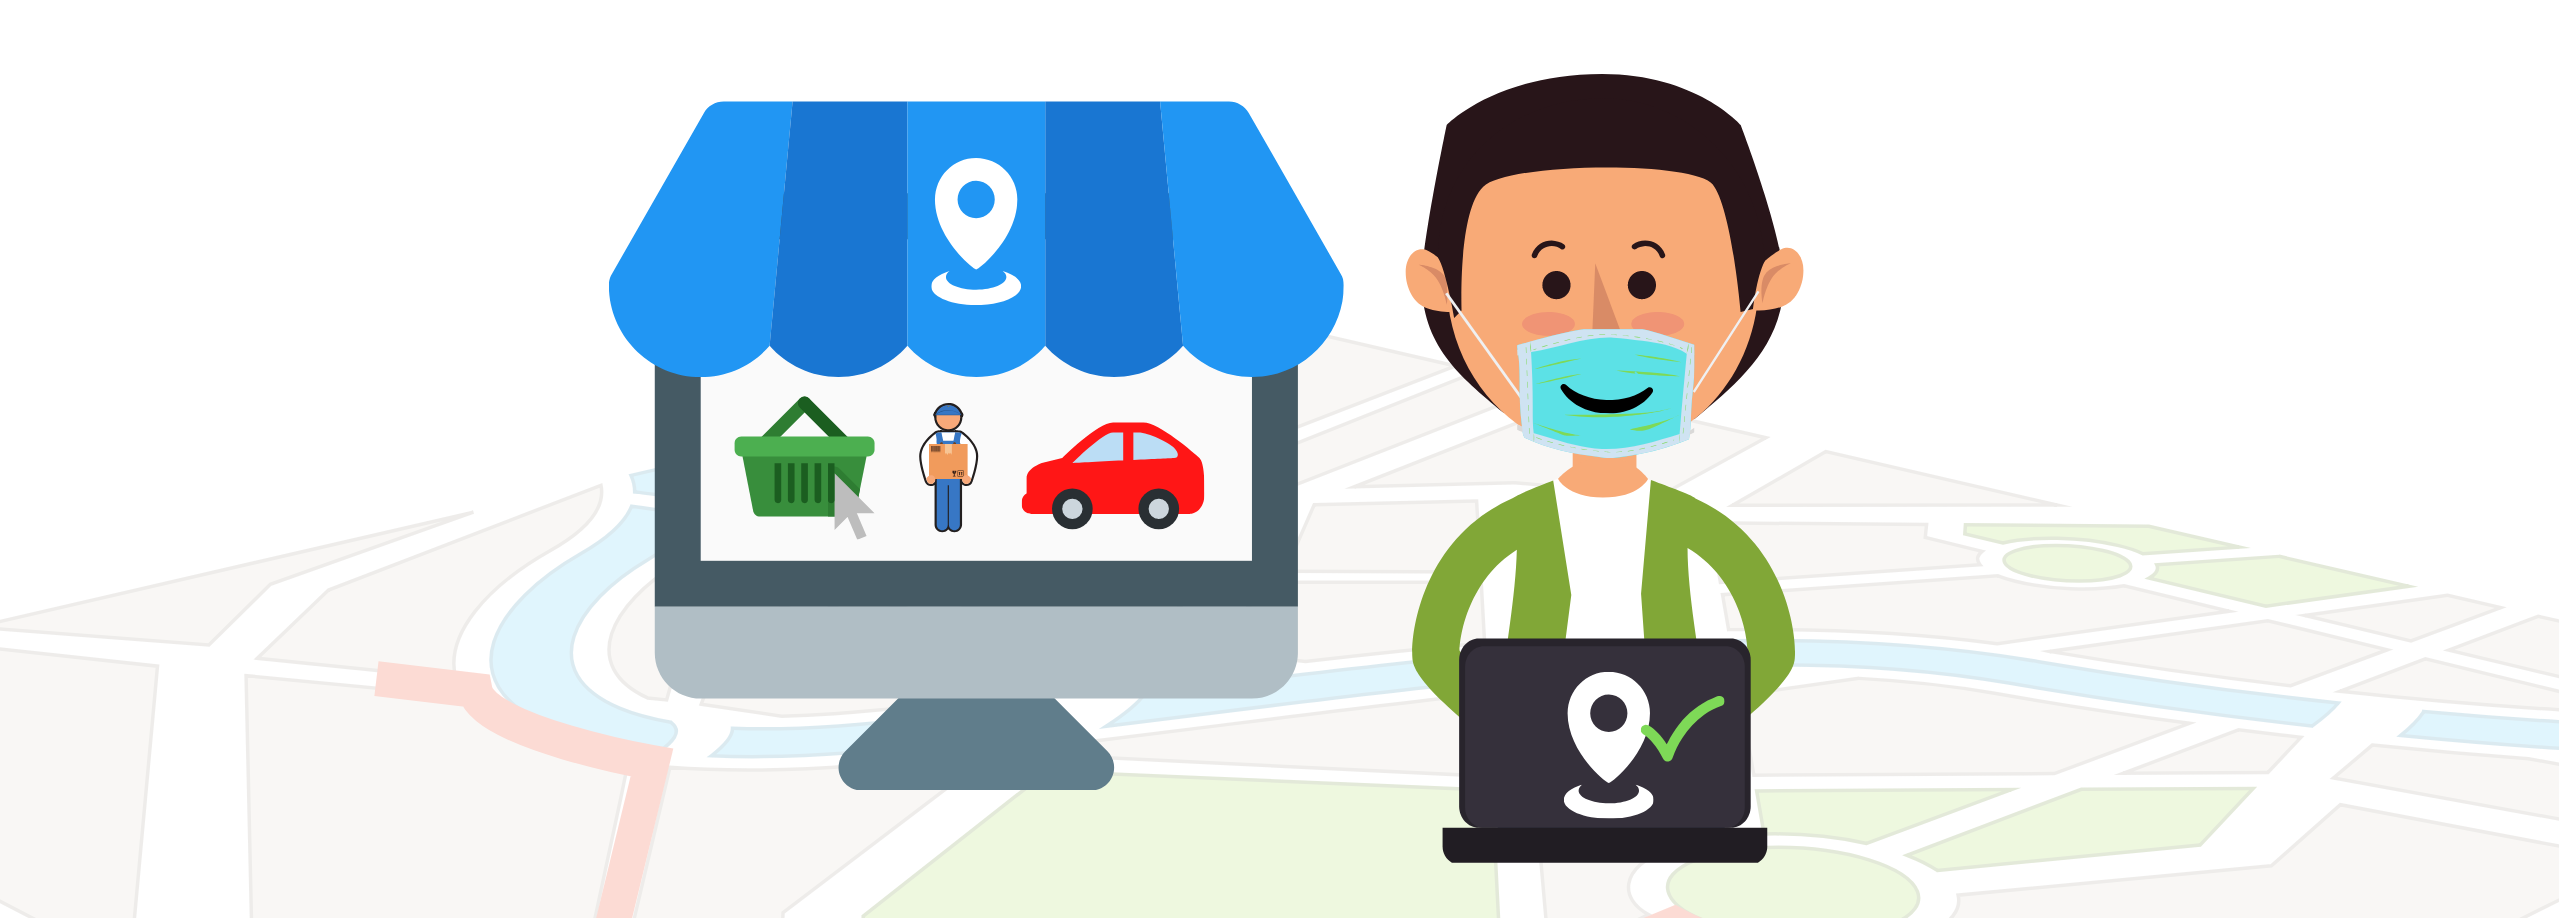 Geolocation boosts retail in pandemic times. The move to the Low touch economy